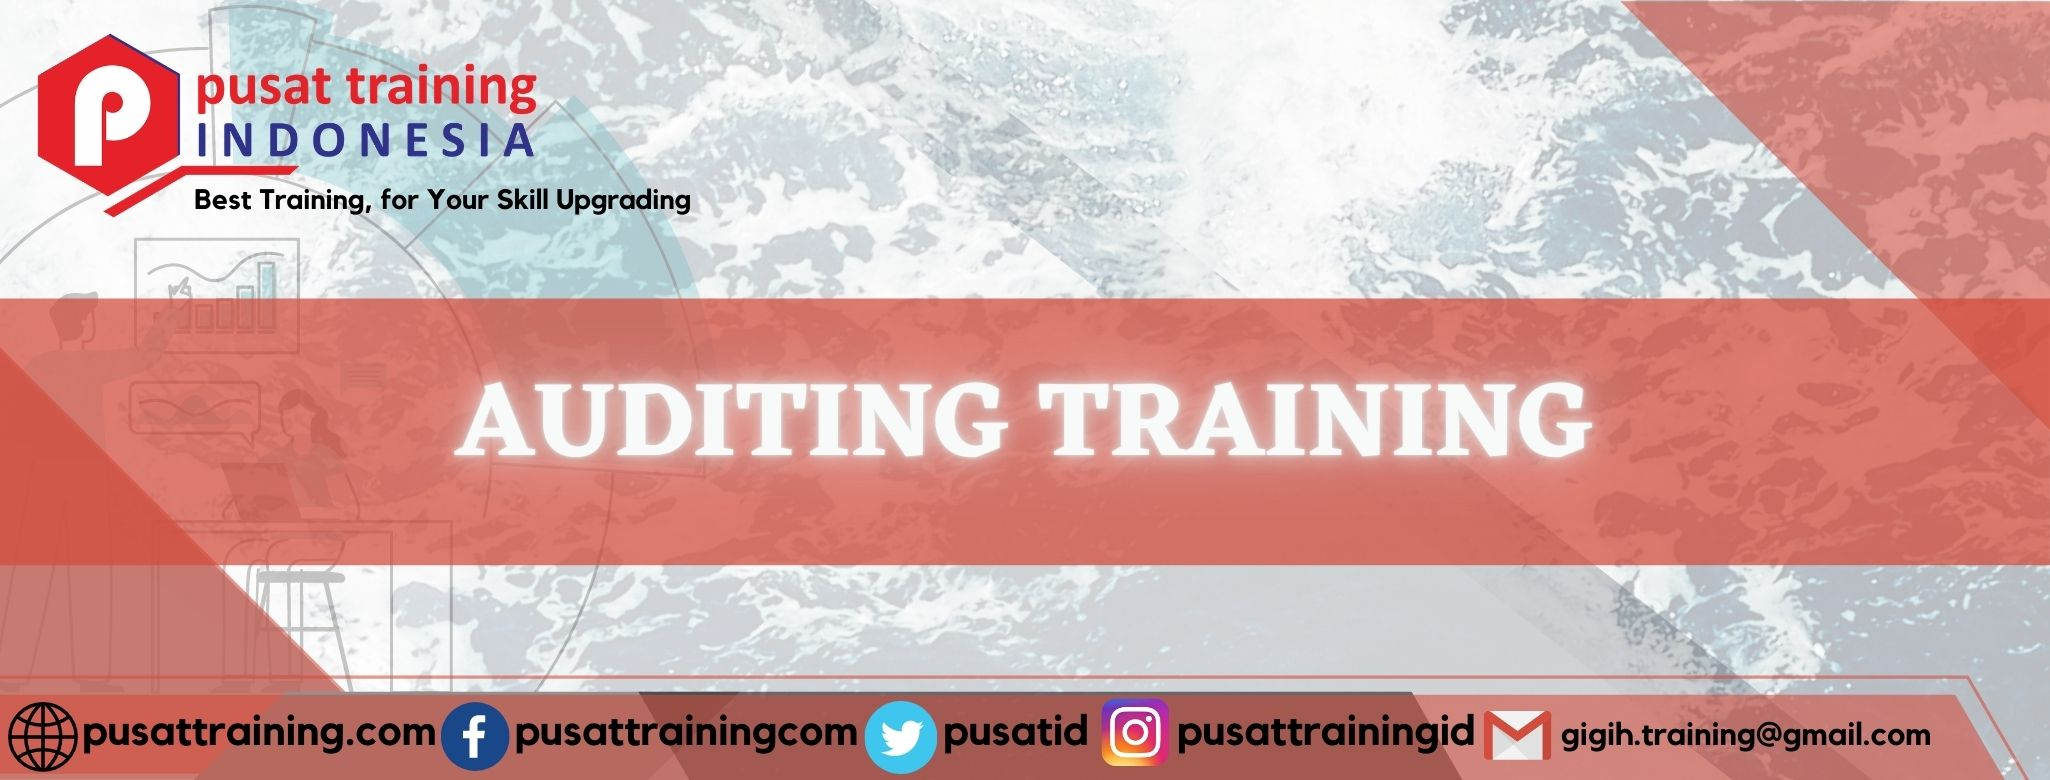 AUDITING TRAINING